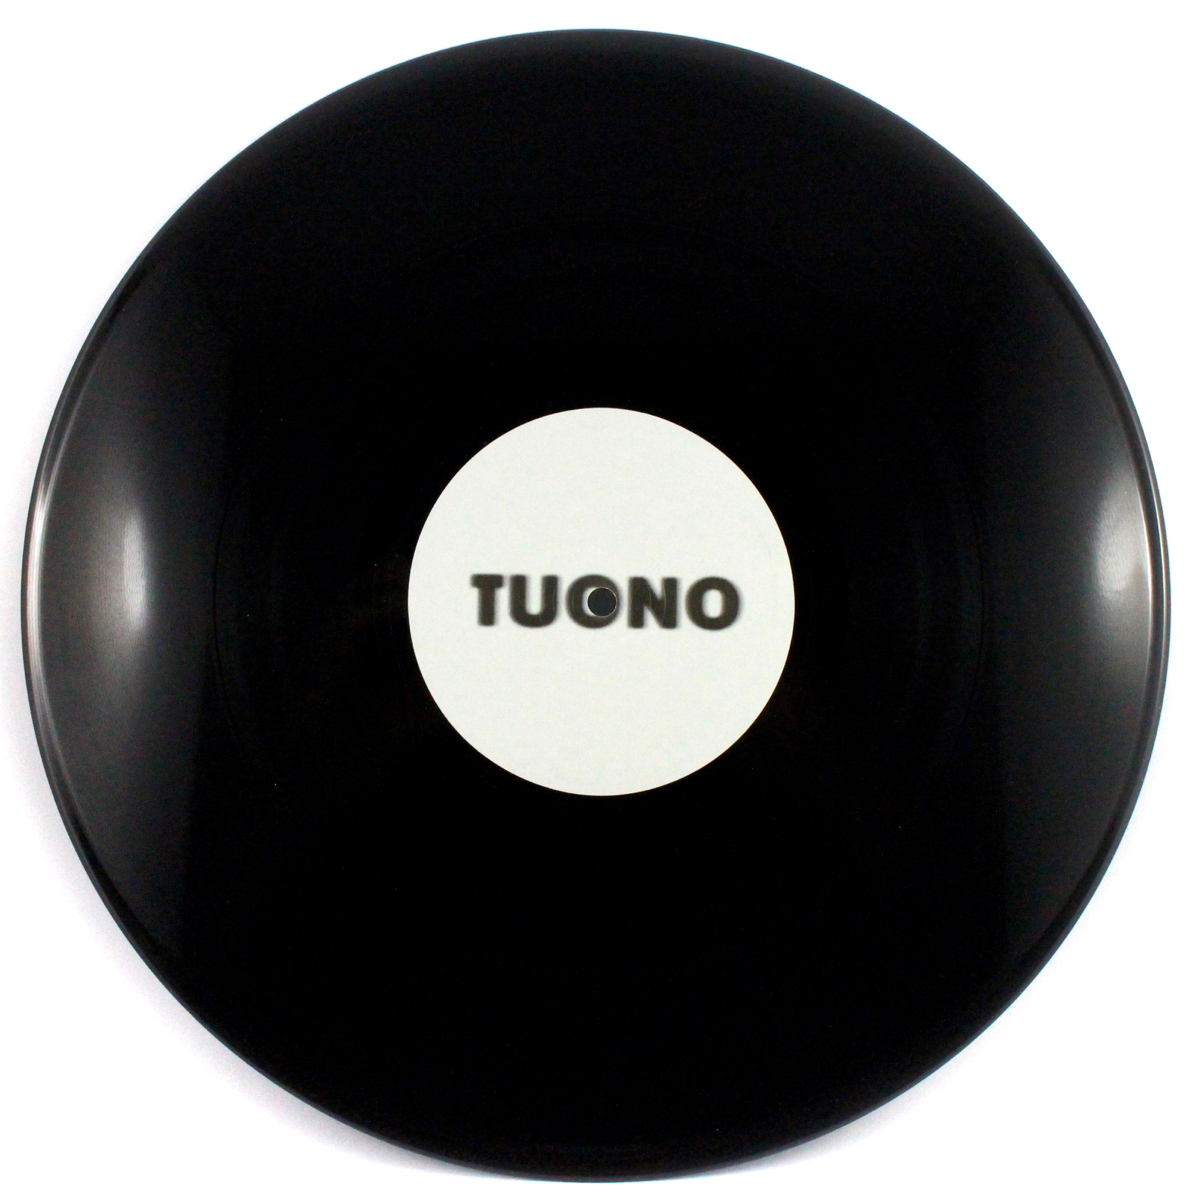 Degu 018 - Tuono - Remixed - In stock